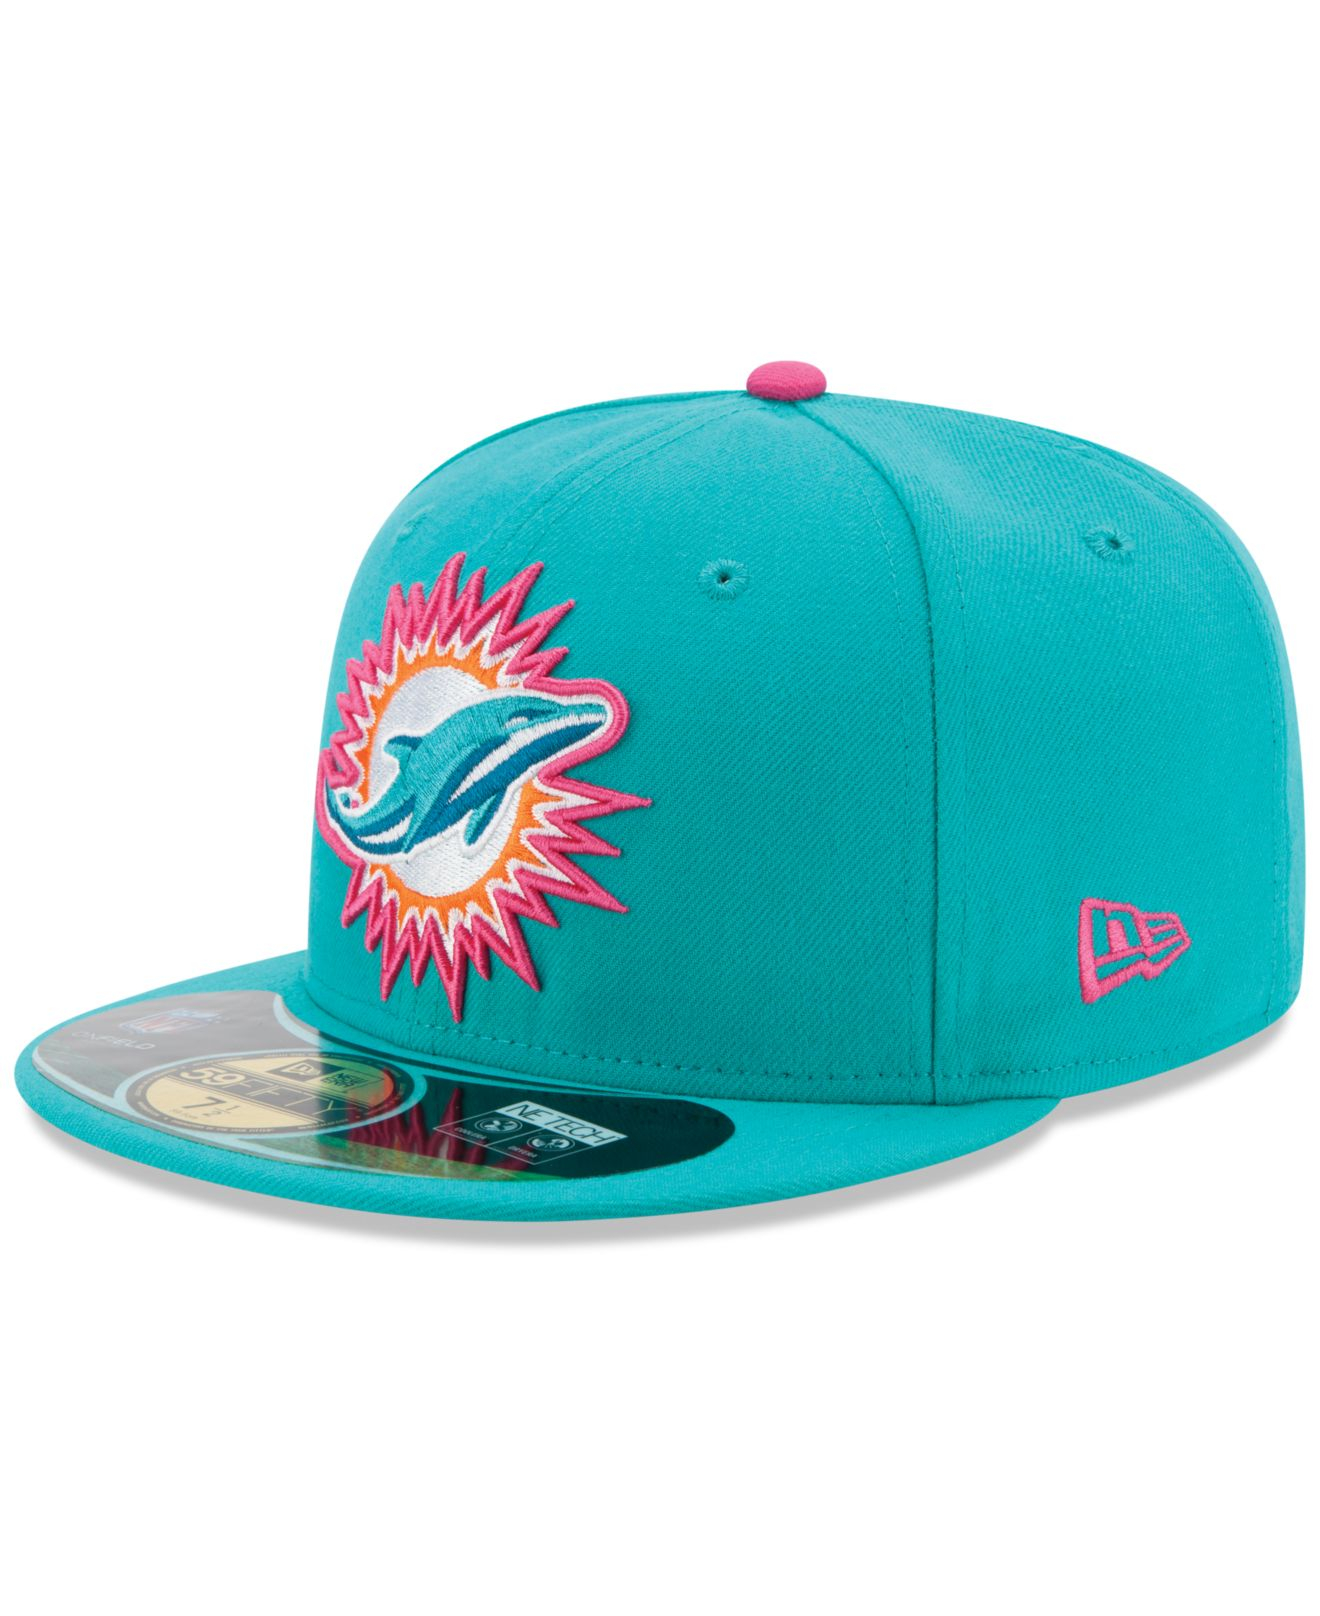 1c50736e4 where to buy lyst ktz miami dolphins breast cancer awareness 59fifty cap in  blue for men